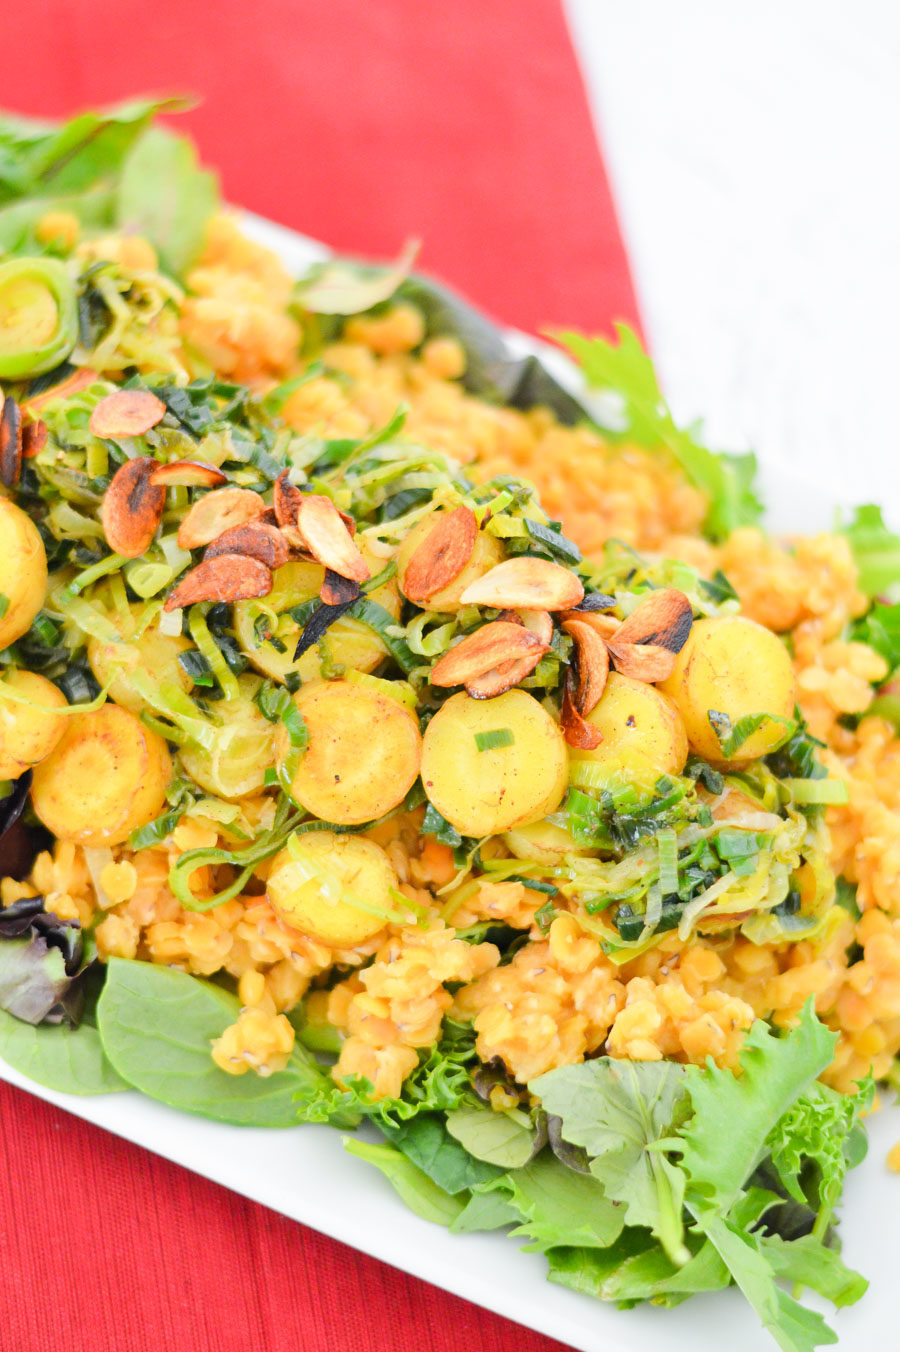 Warm Red Lentil Salad